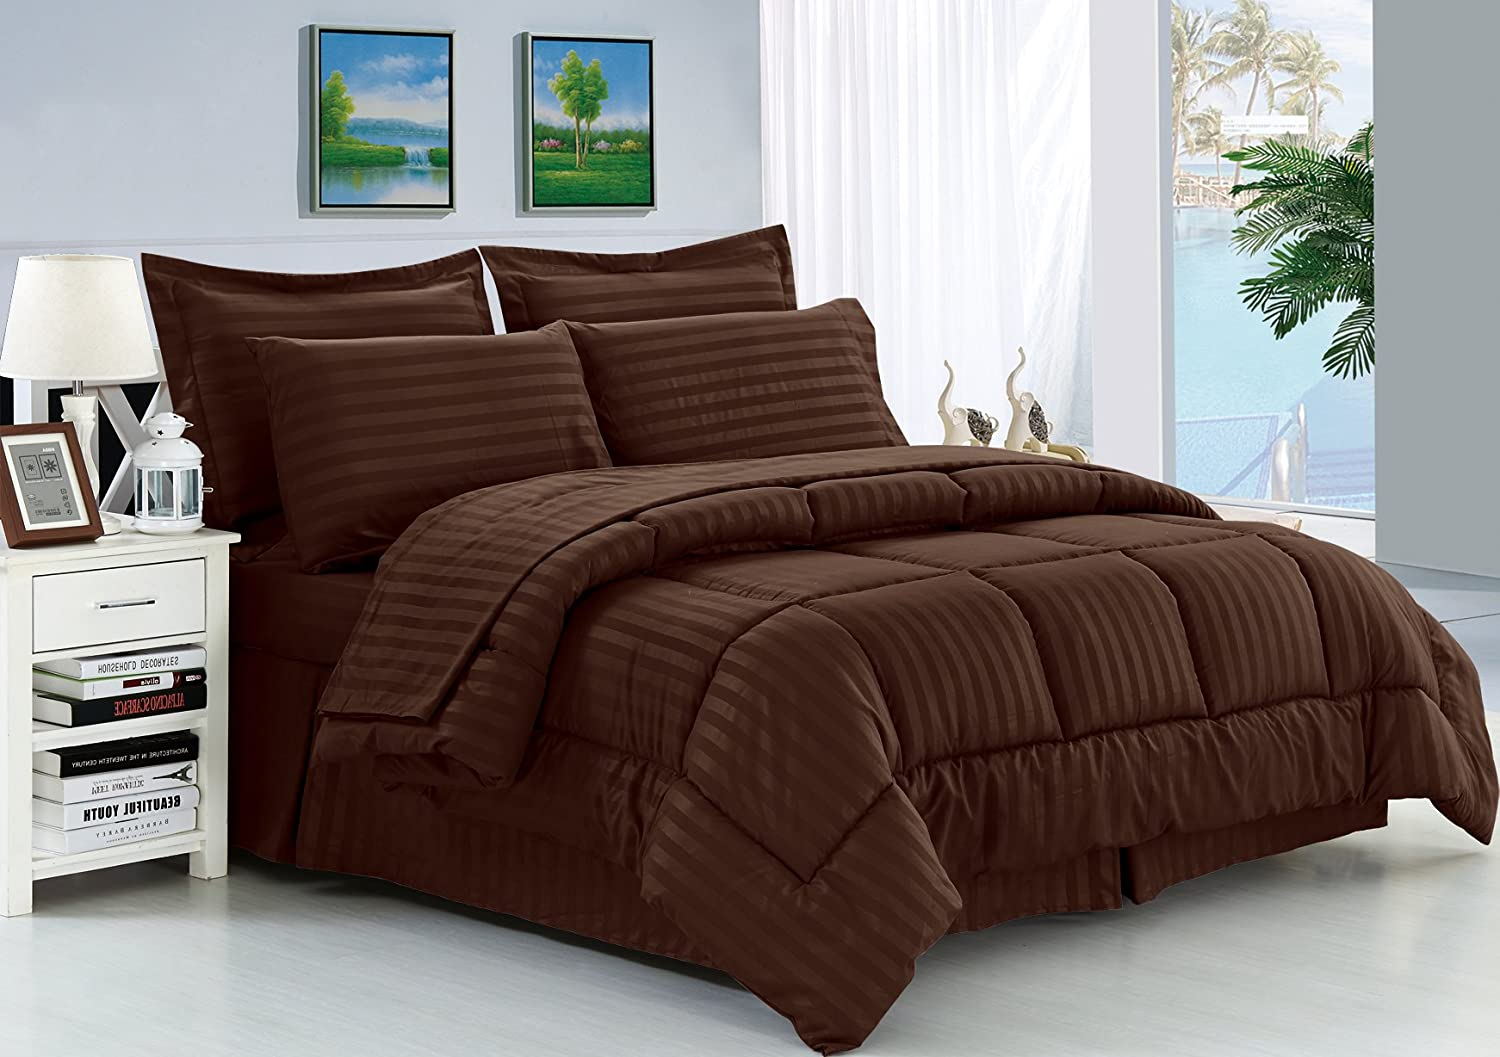 8-Piece Comforter Set --HypoAllergenic - Full/Queen, Chocolate